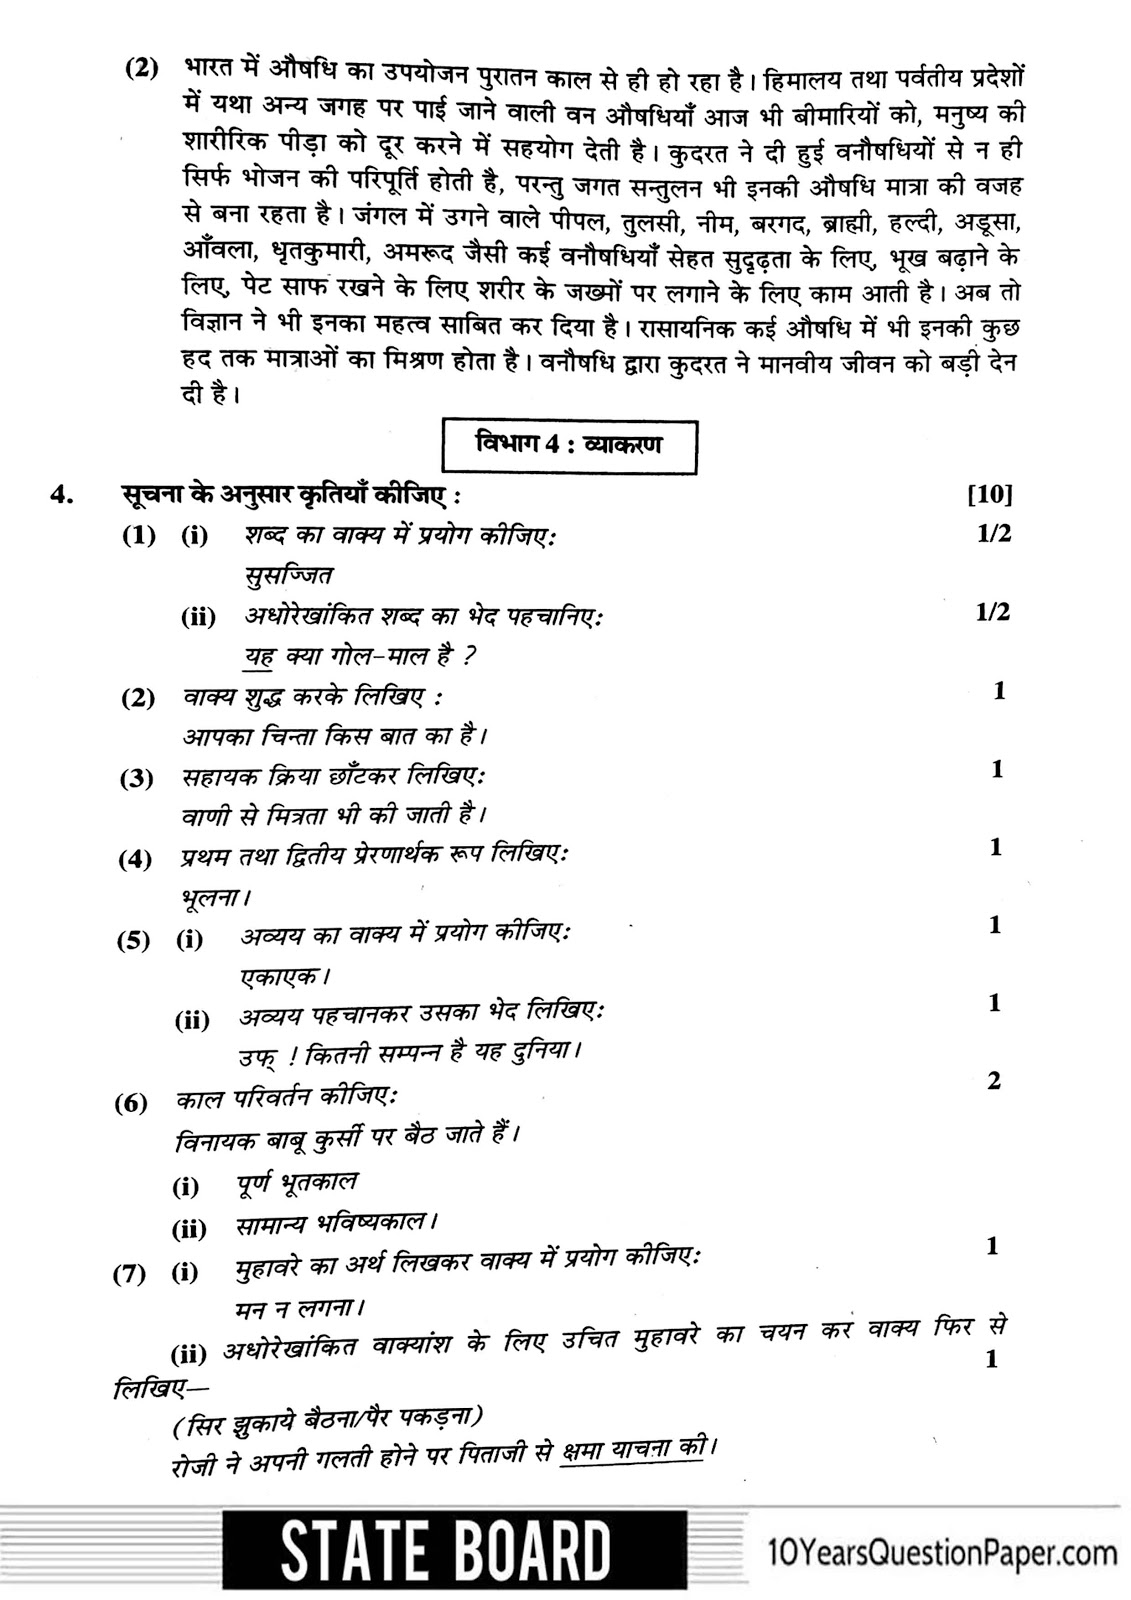 SSC board class 10th 2017 Hindi Entire Solved question paper